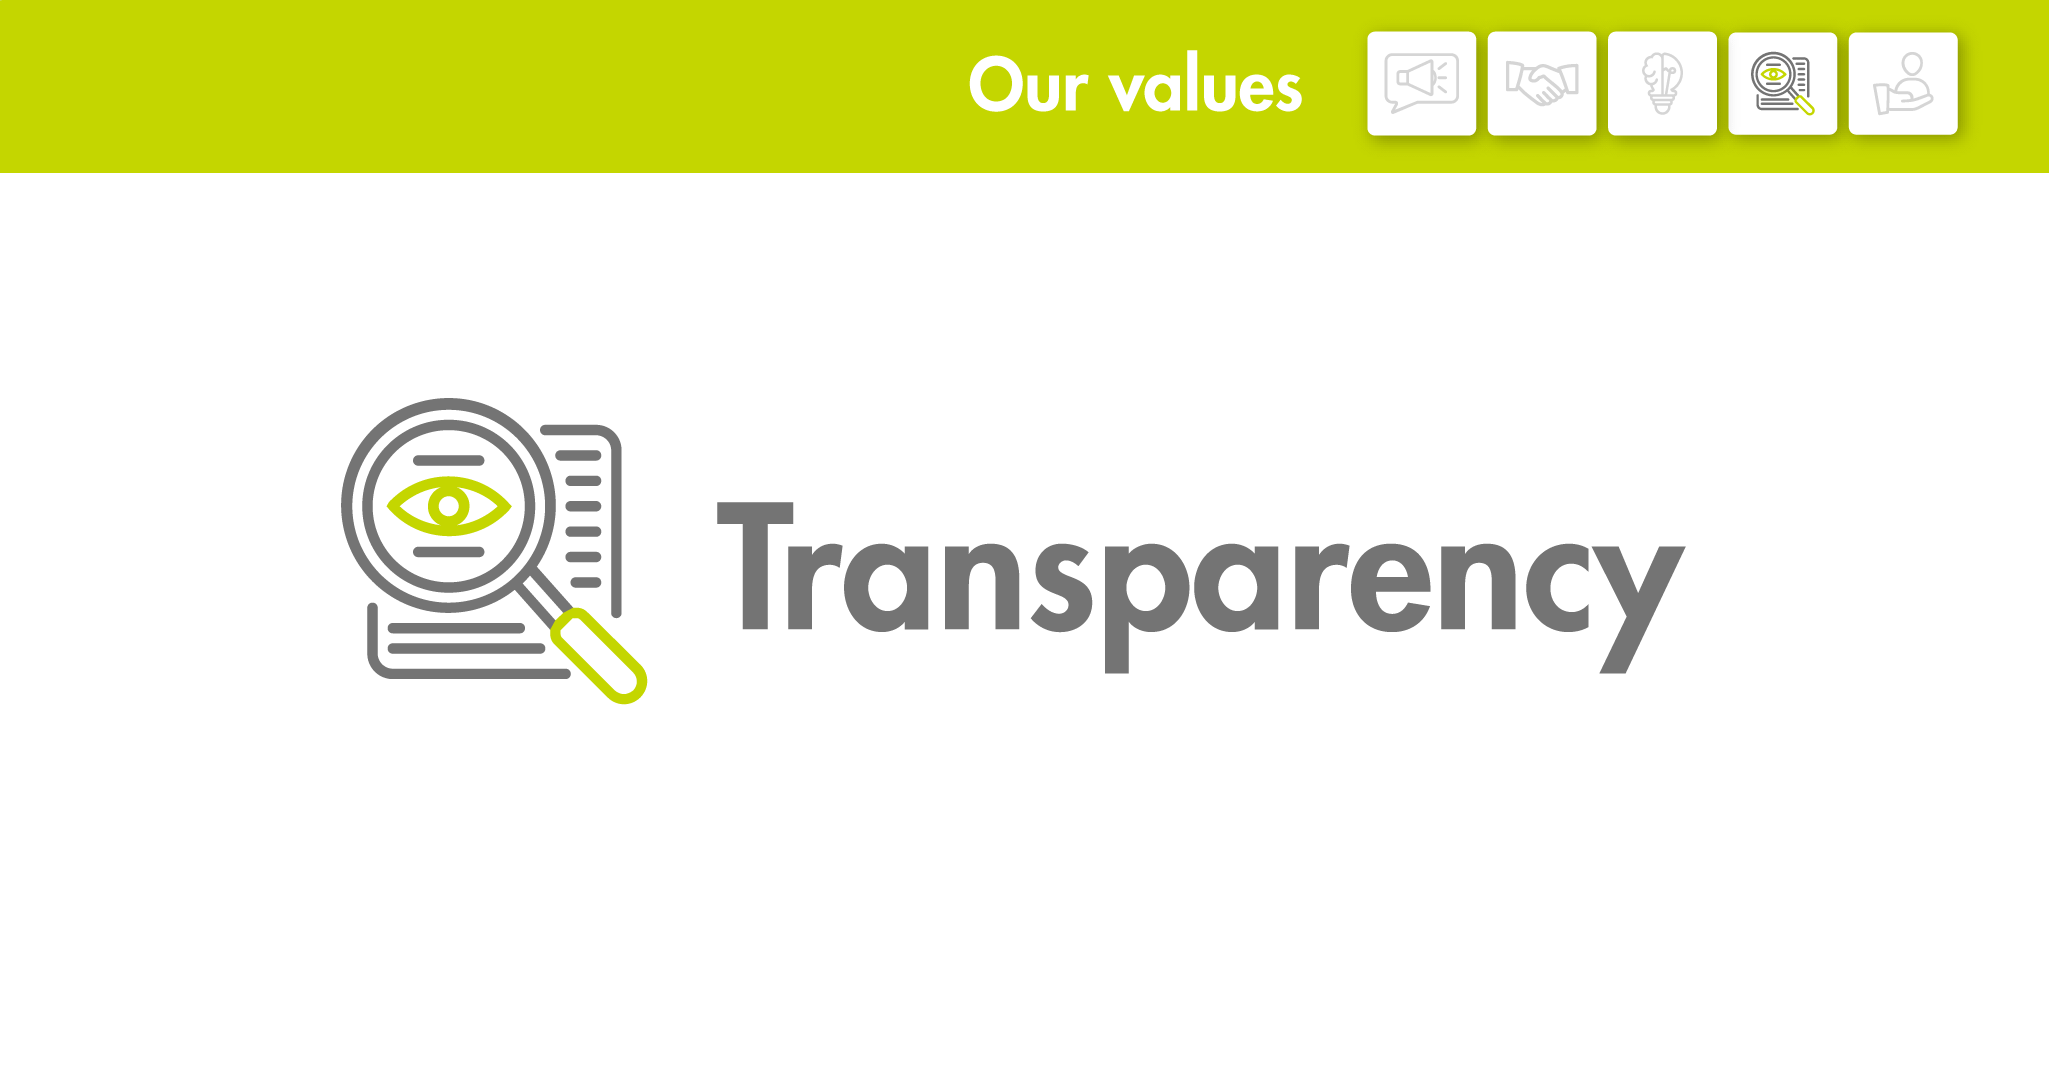 Our values: Transparency